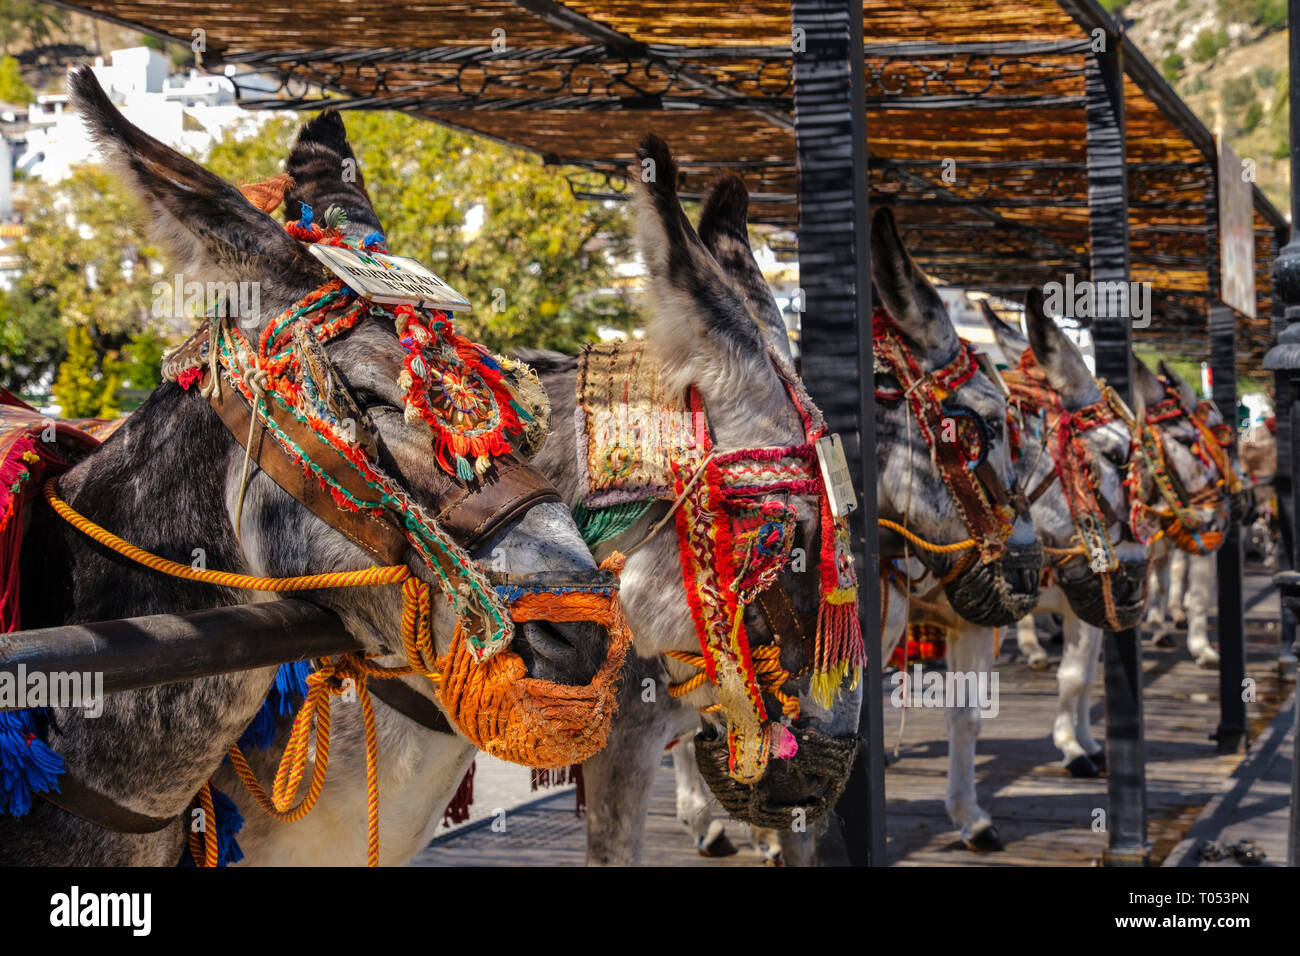 Famous donkey taxi. Attraction for visitors, typical white village of Mijas. Costa del Sol, Málaga province. Andalusia, Southern Spain Europe - Stock Image